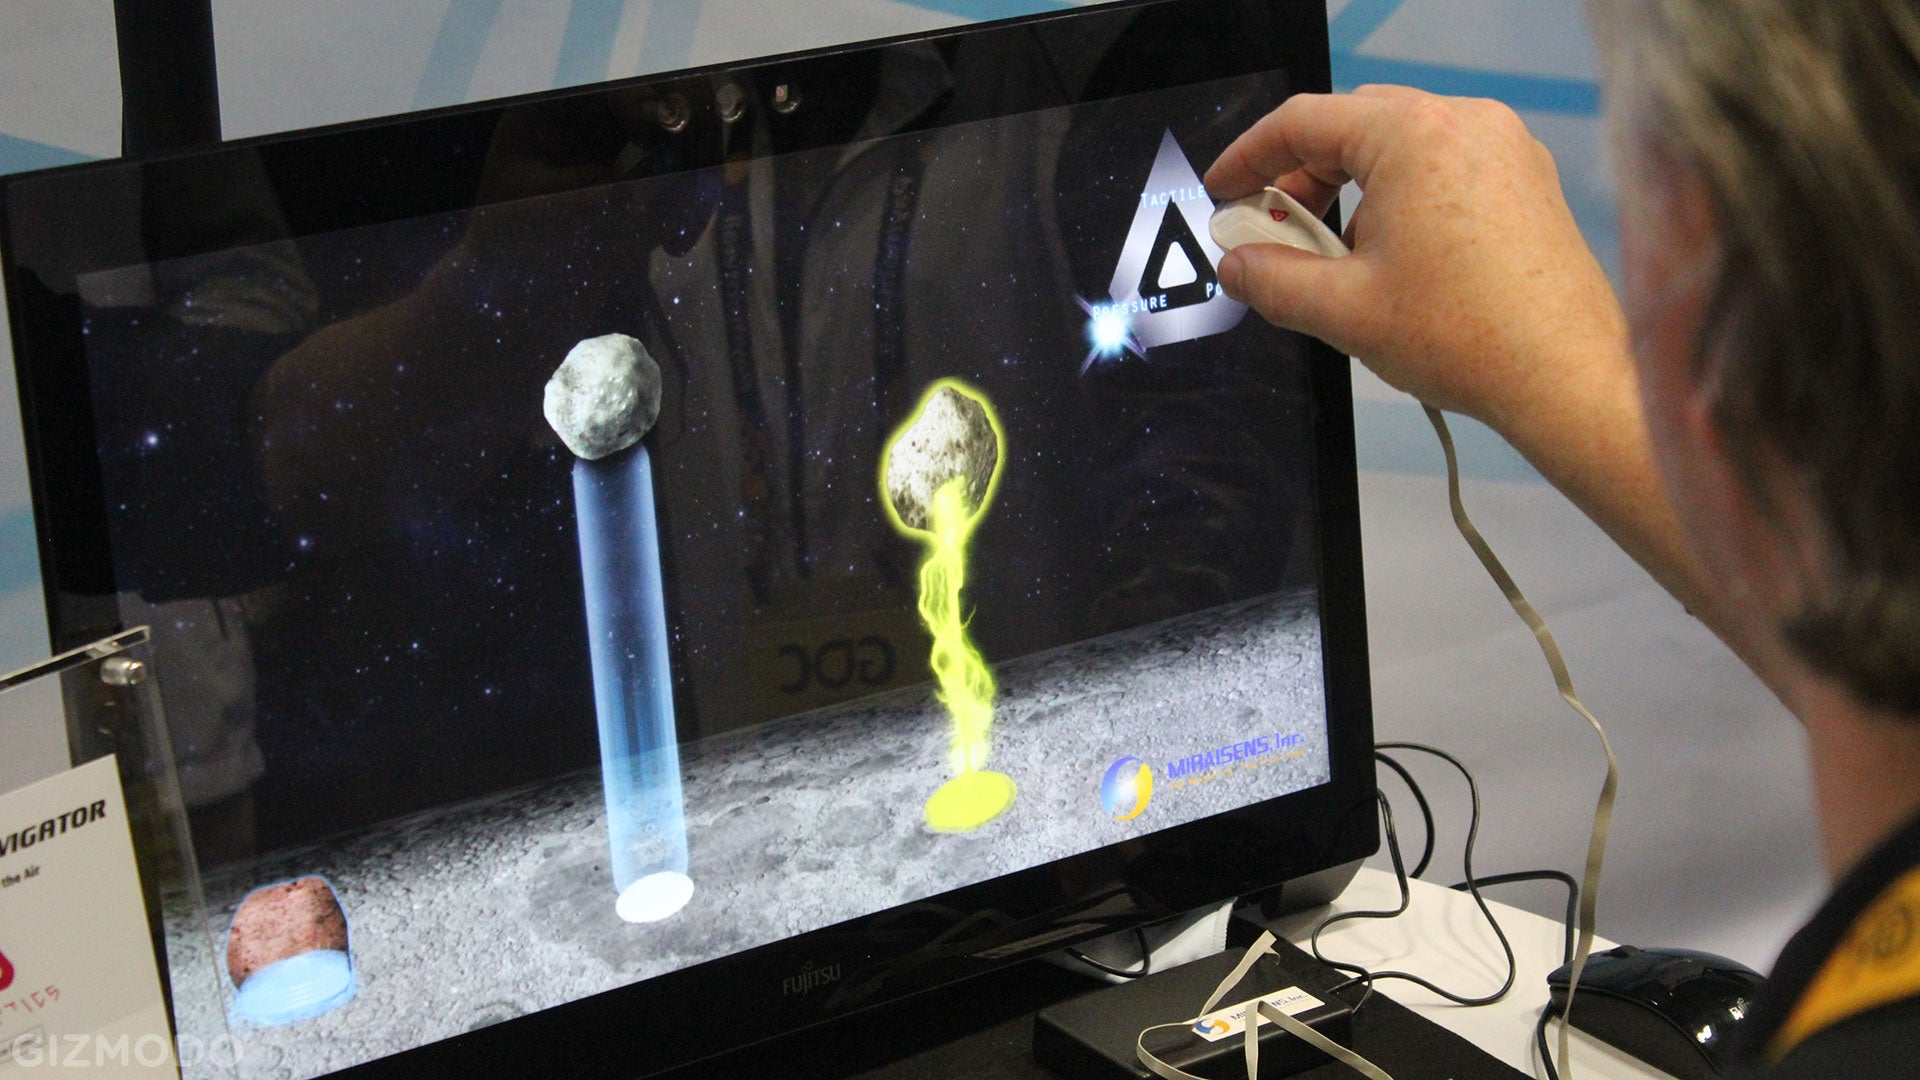 5 Ludicrous Controllers That Help You Touch the Virtual World